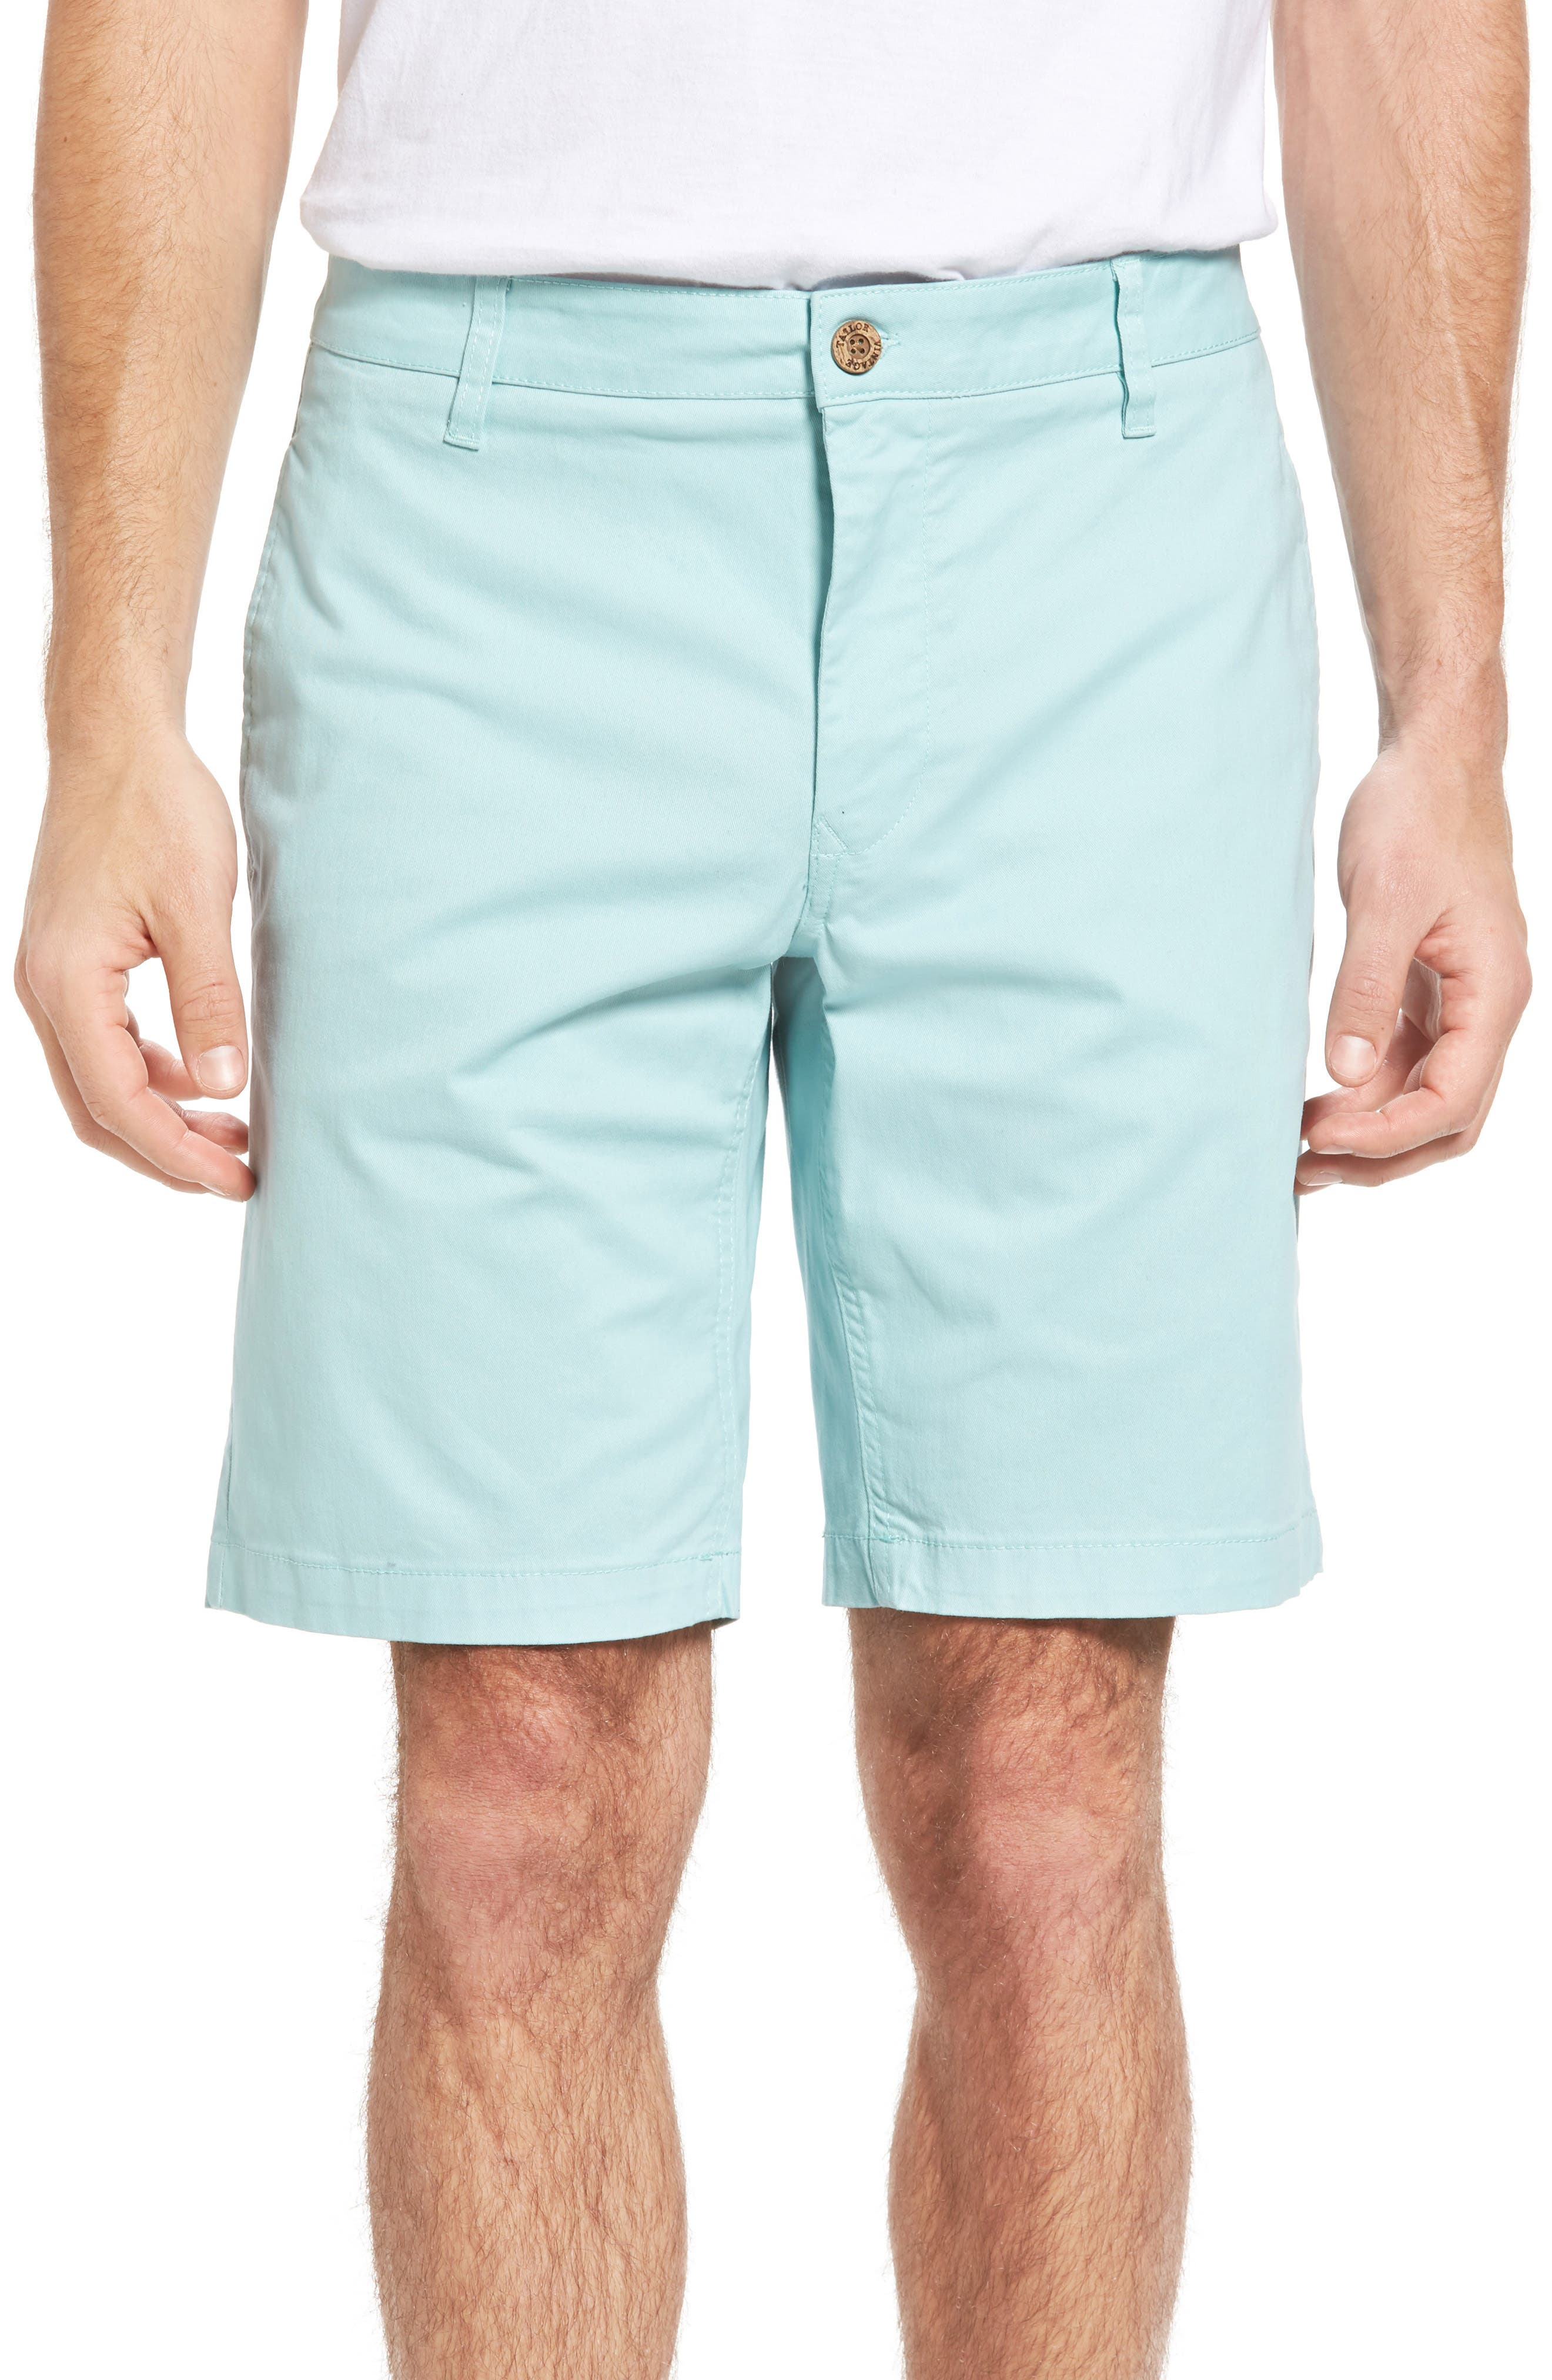 Stretch Twill Walking Shorts,                             Main thumbnail 1, color,                             Canal Blue